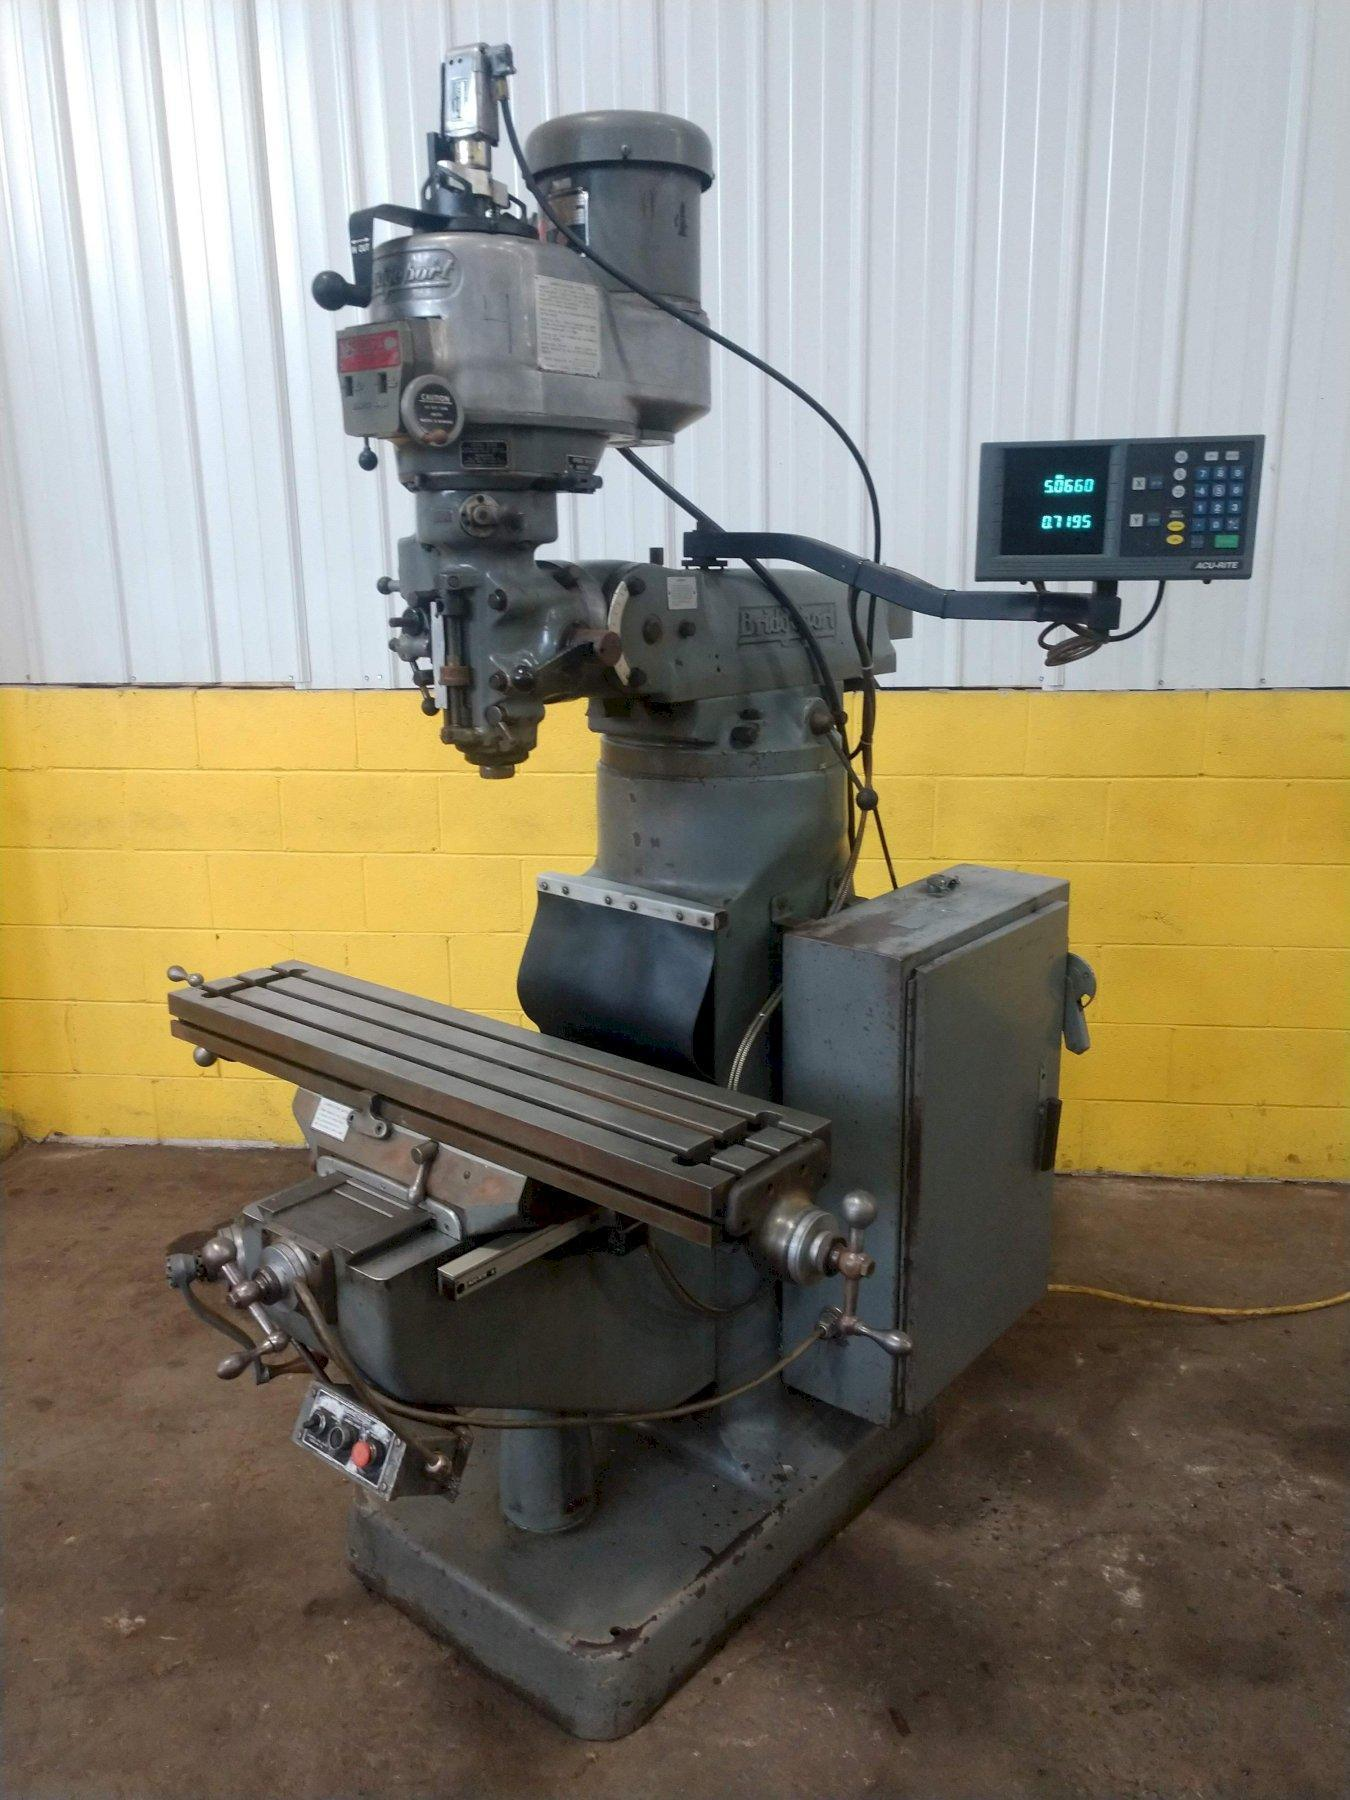 2 HP BRIDGEPORT SERIES I VERTICAL RAM TYPE MILL. STOCK # 0207121